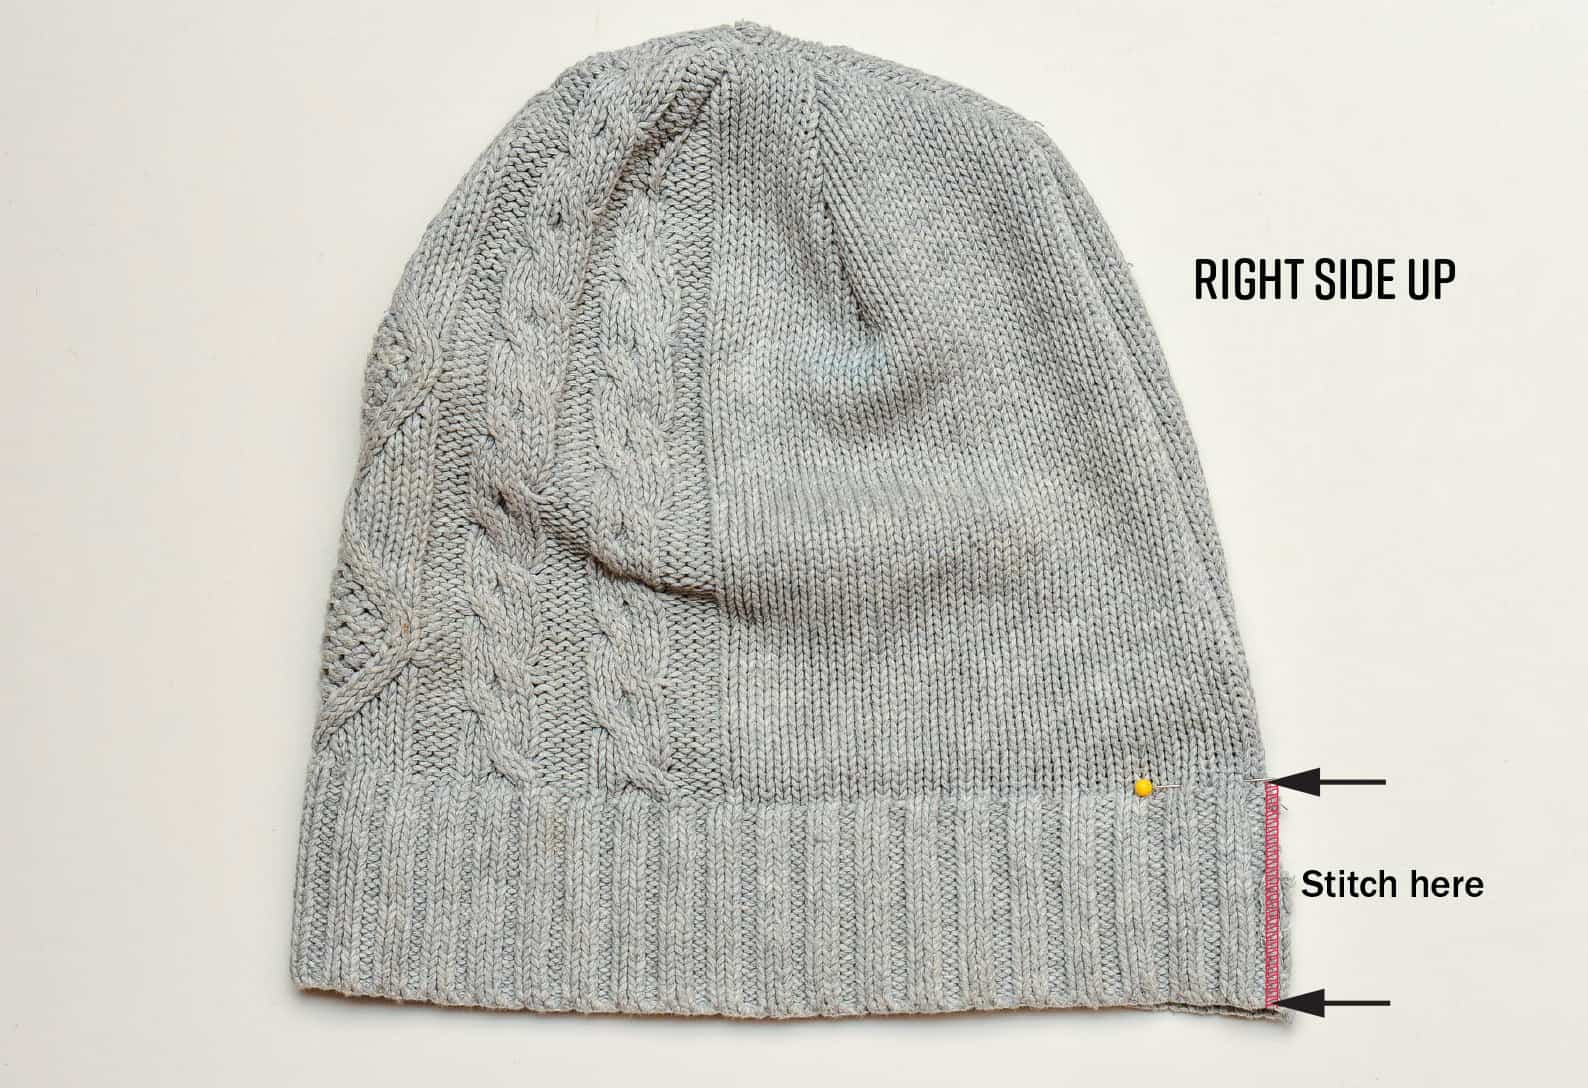 How to sew a knit hat beanie